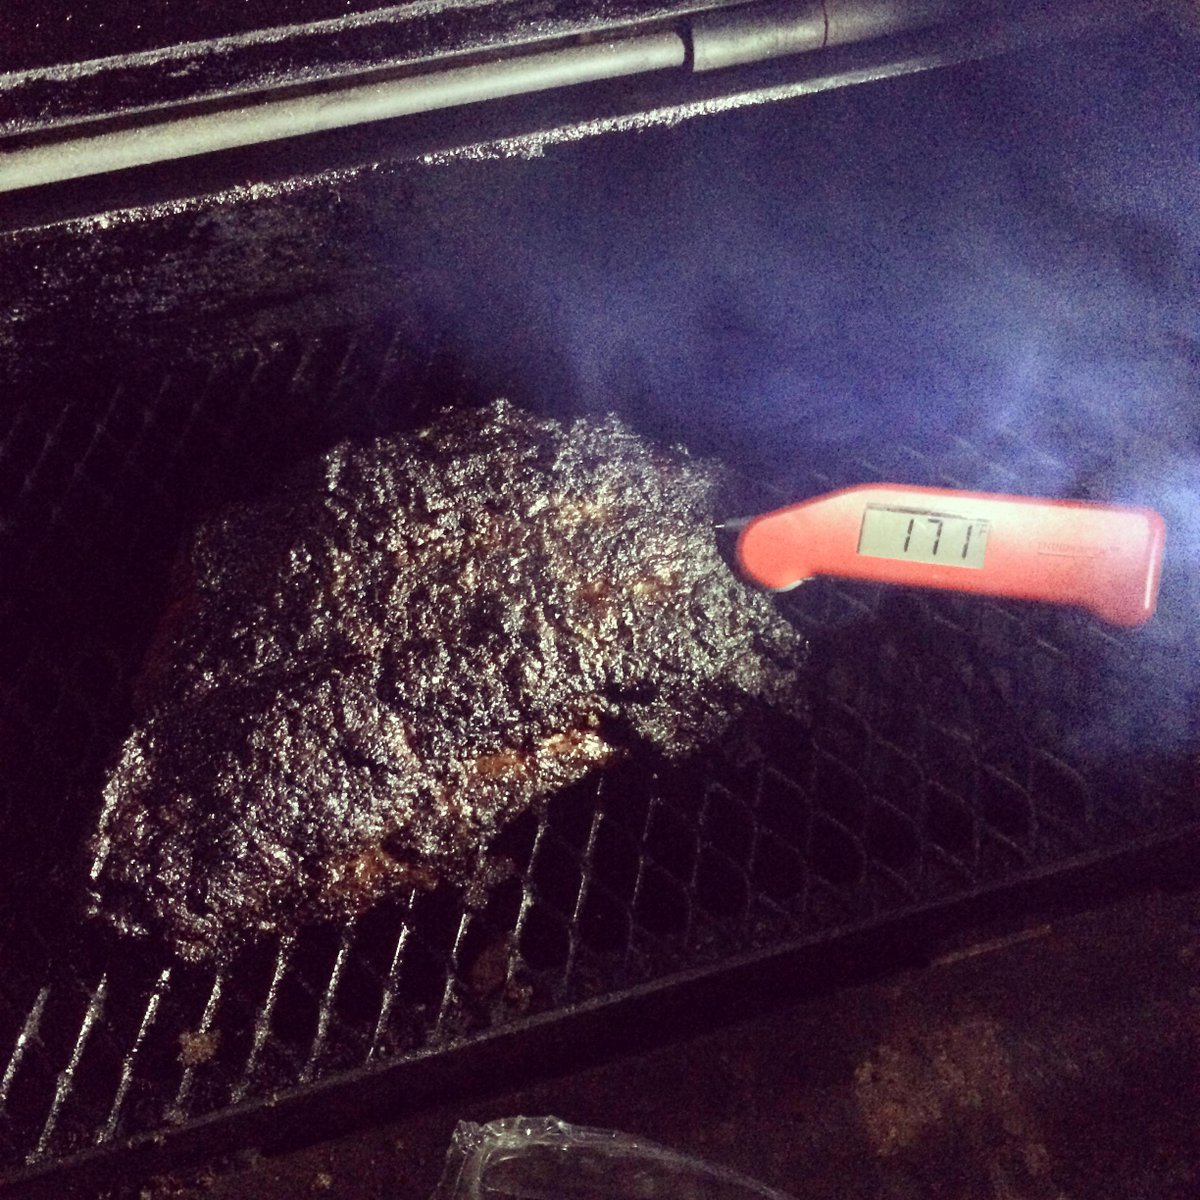 7 Dirty Truths About #BBQ (That Nobody Wants to Talk About) http://t.co/Oc5t7ubiJy http://t.co/iFI4XH3FeF